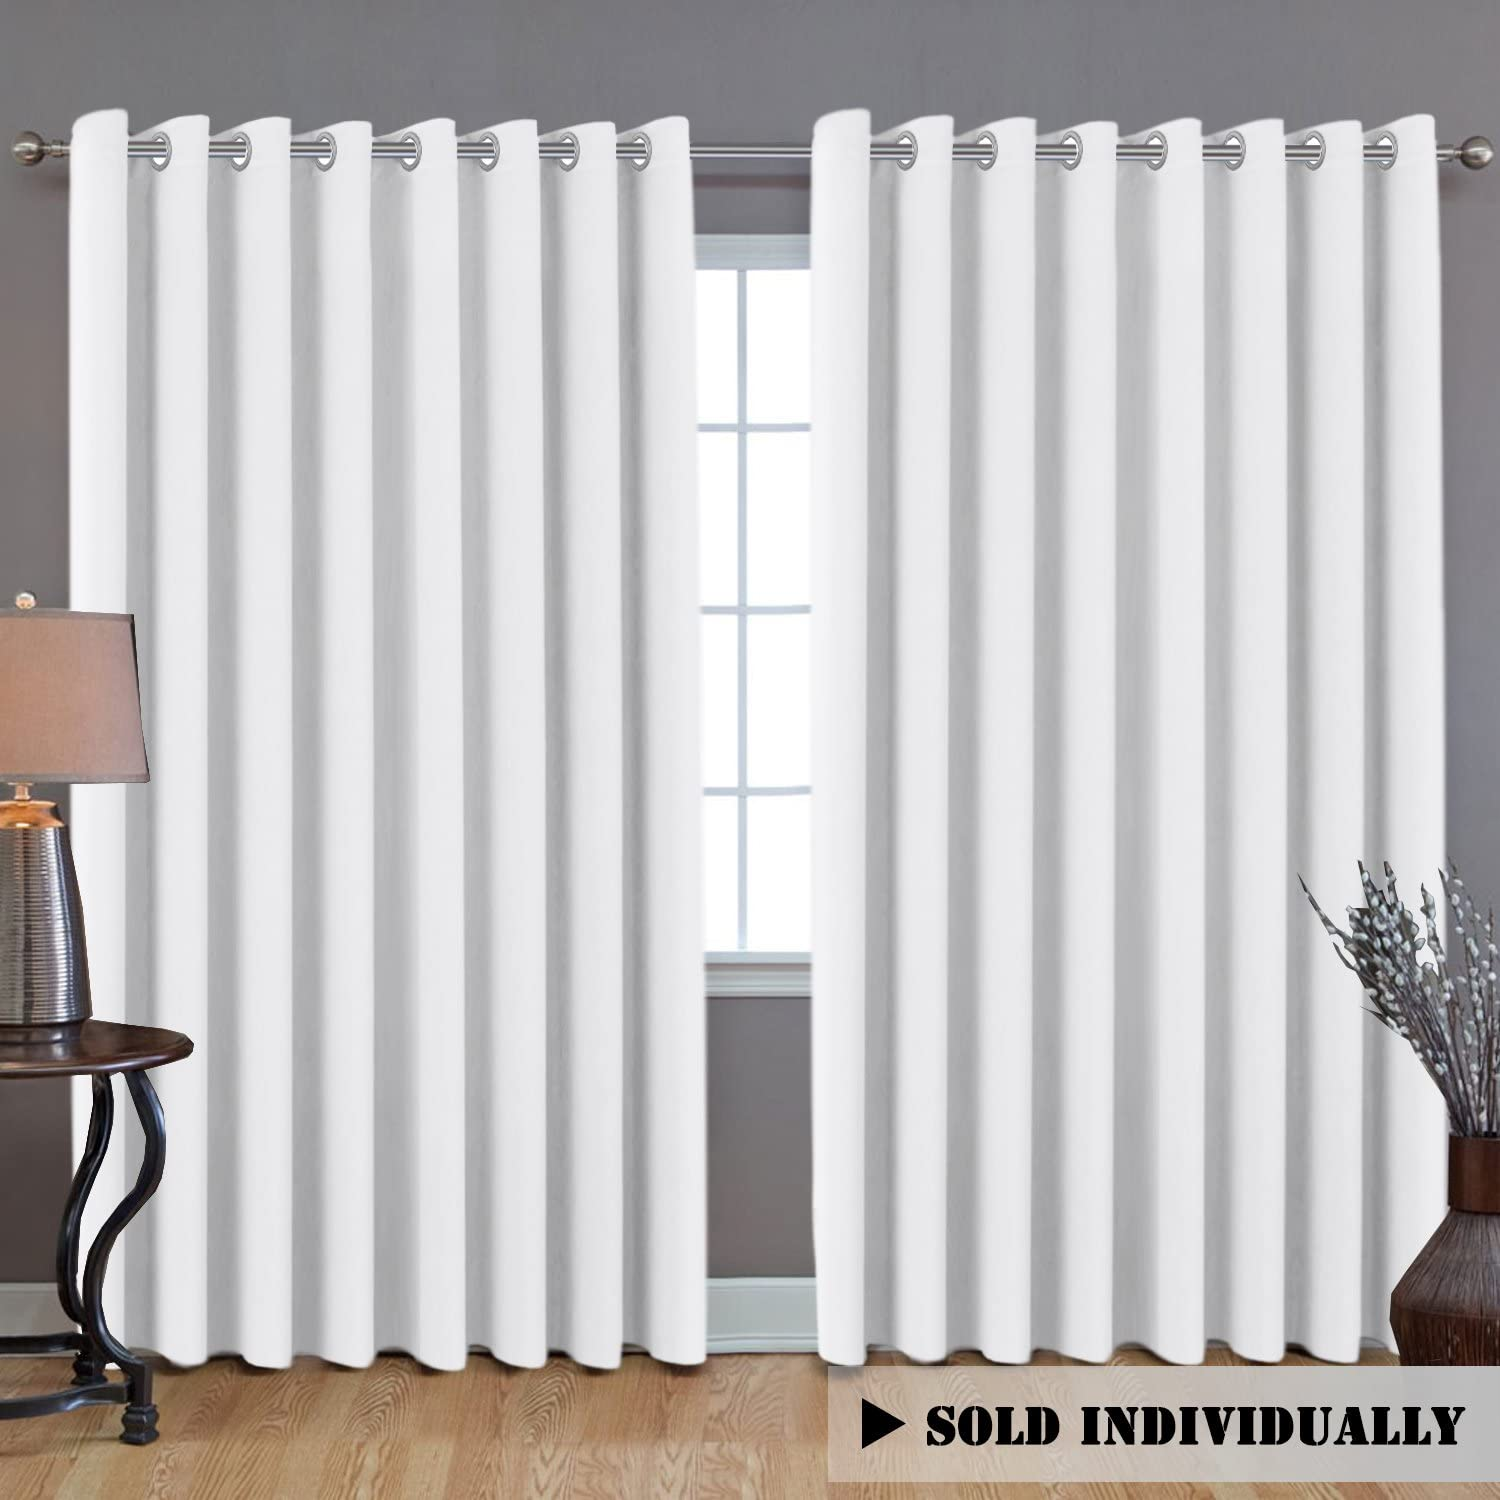 """H.VERSAILTEX White Curtain Thermal Insulated Extra Long Panel/Drapes (100"""" W x 108"""" L), Premium Total Privacy Room Divider Curtain (9ft Tall by 8.5ft Wide)"""